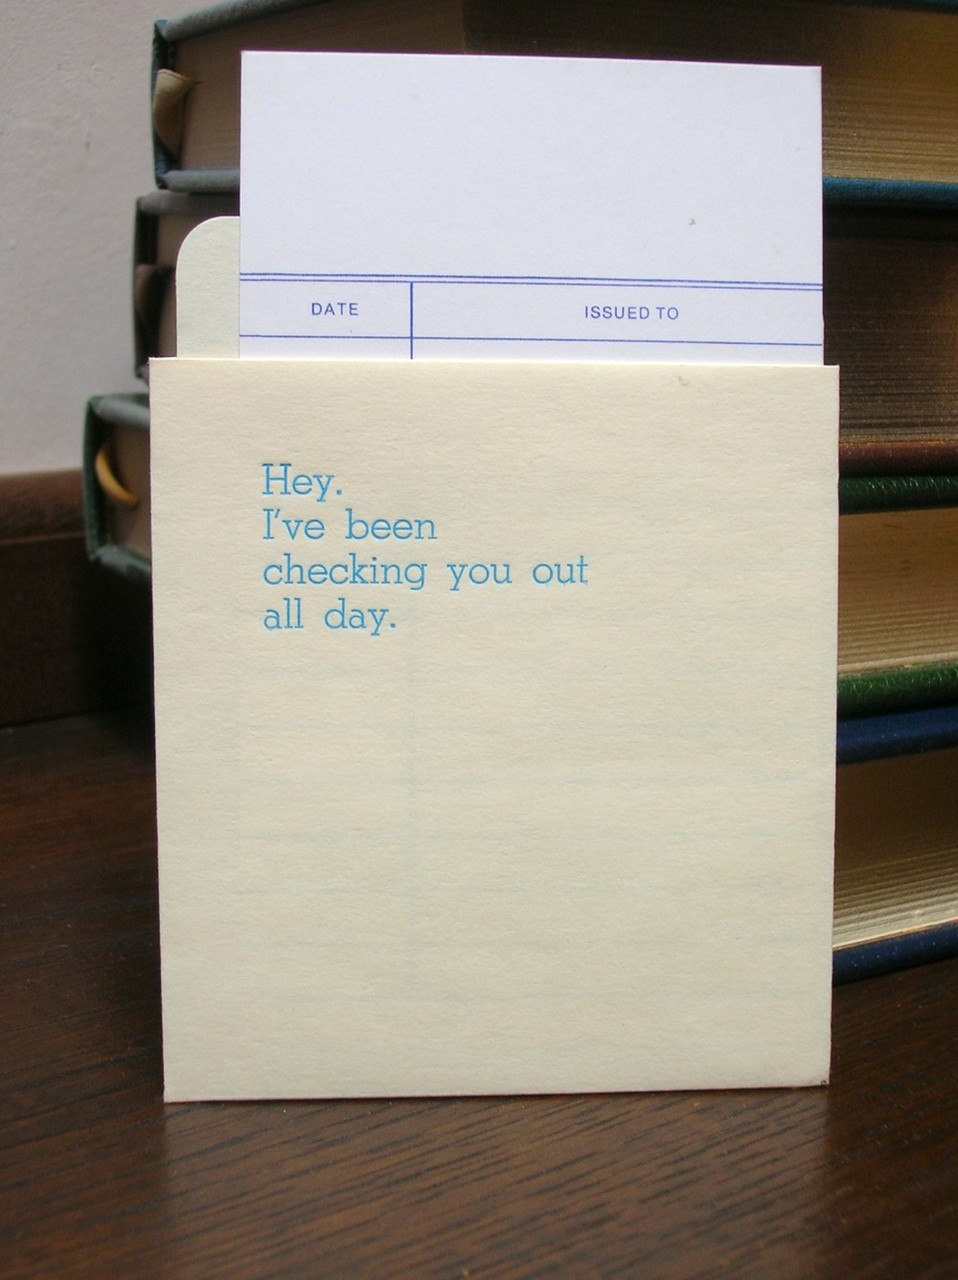 via bookspaperscissors: library card catalog love notes from powerandlight on etsy